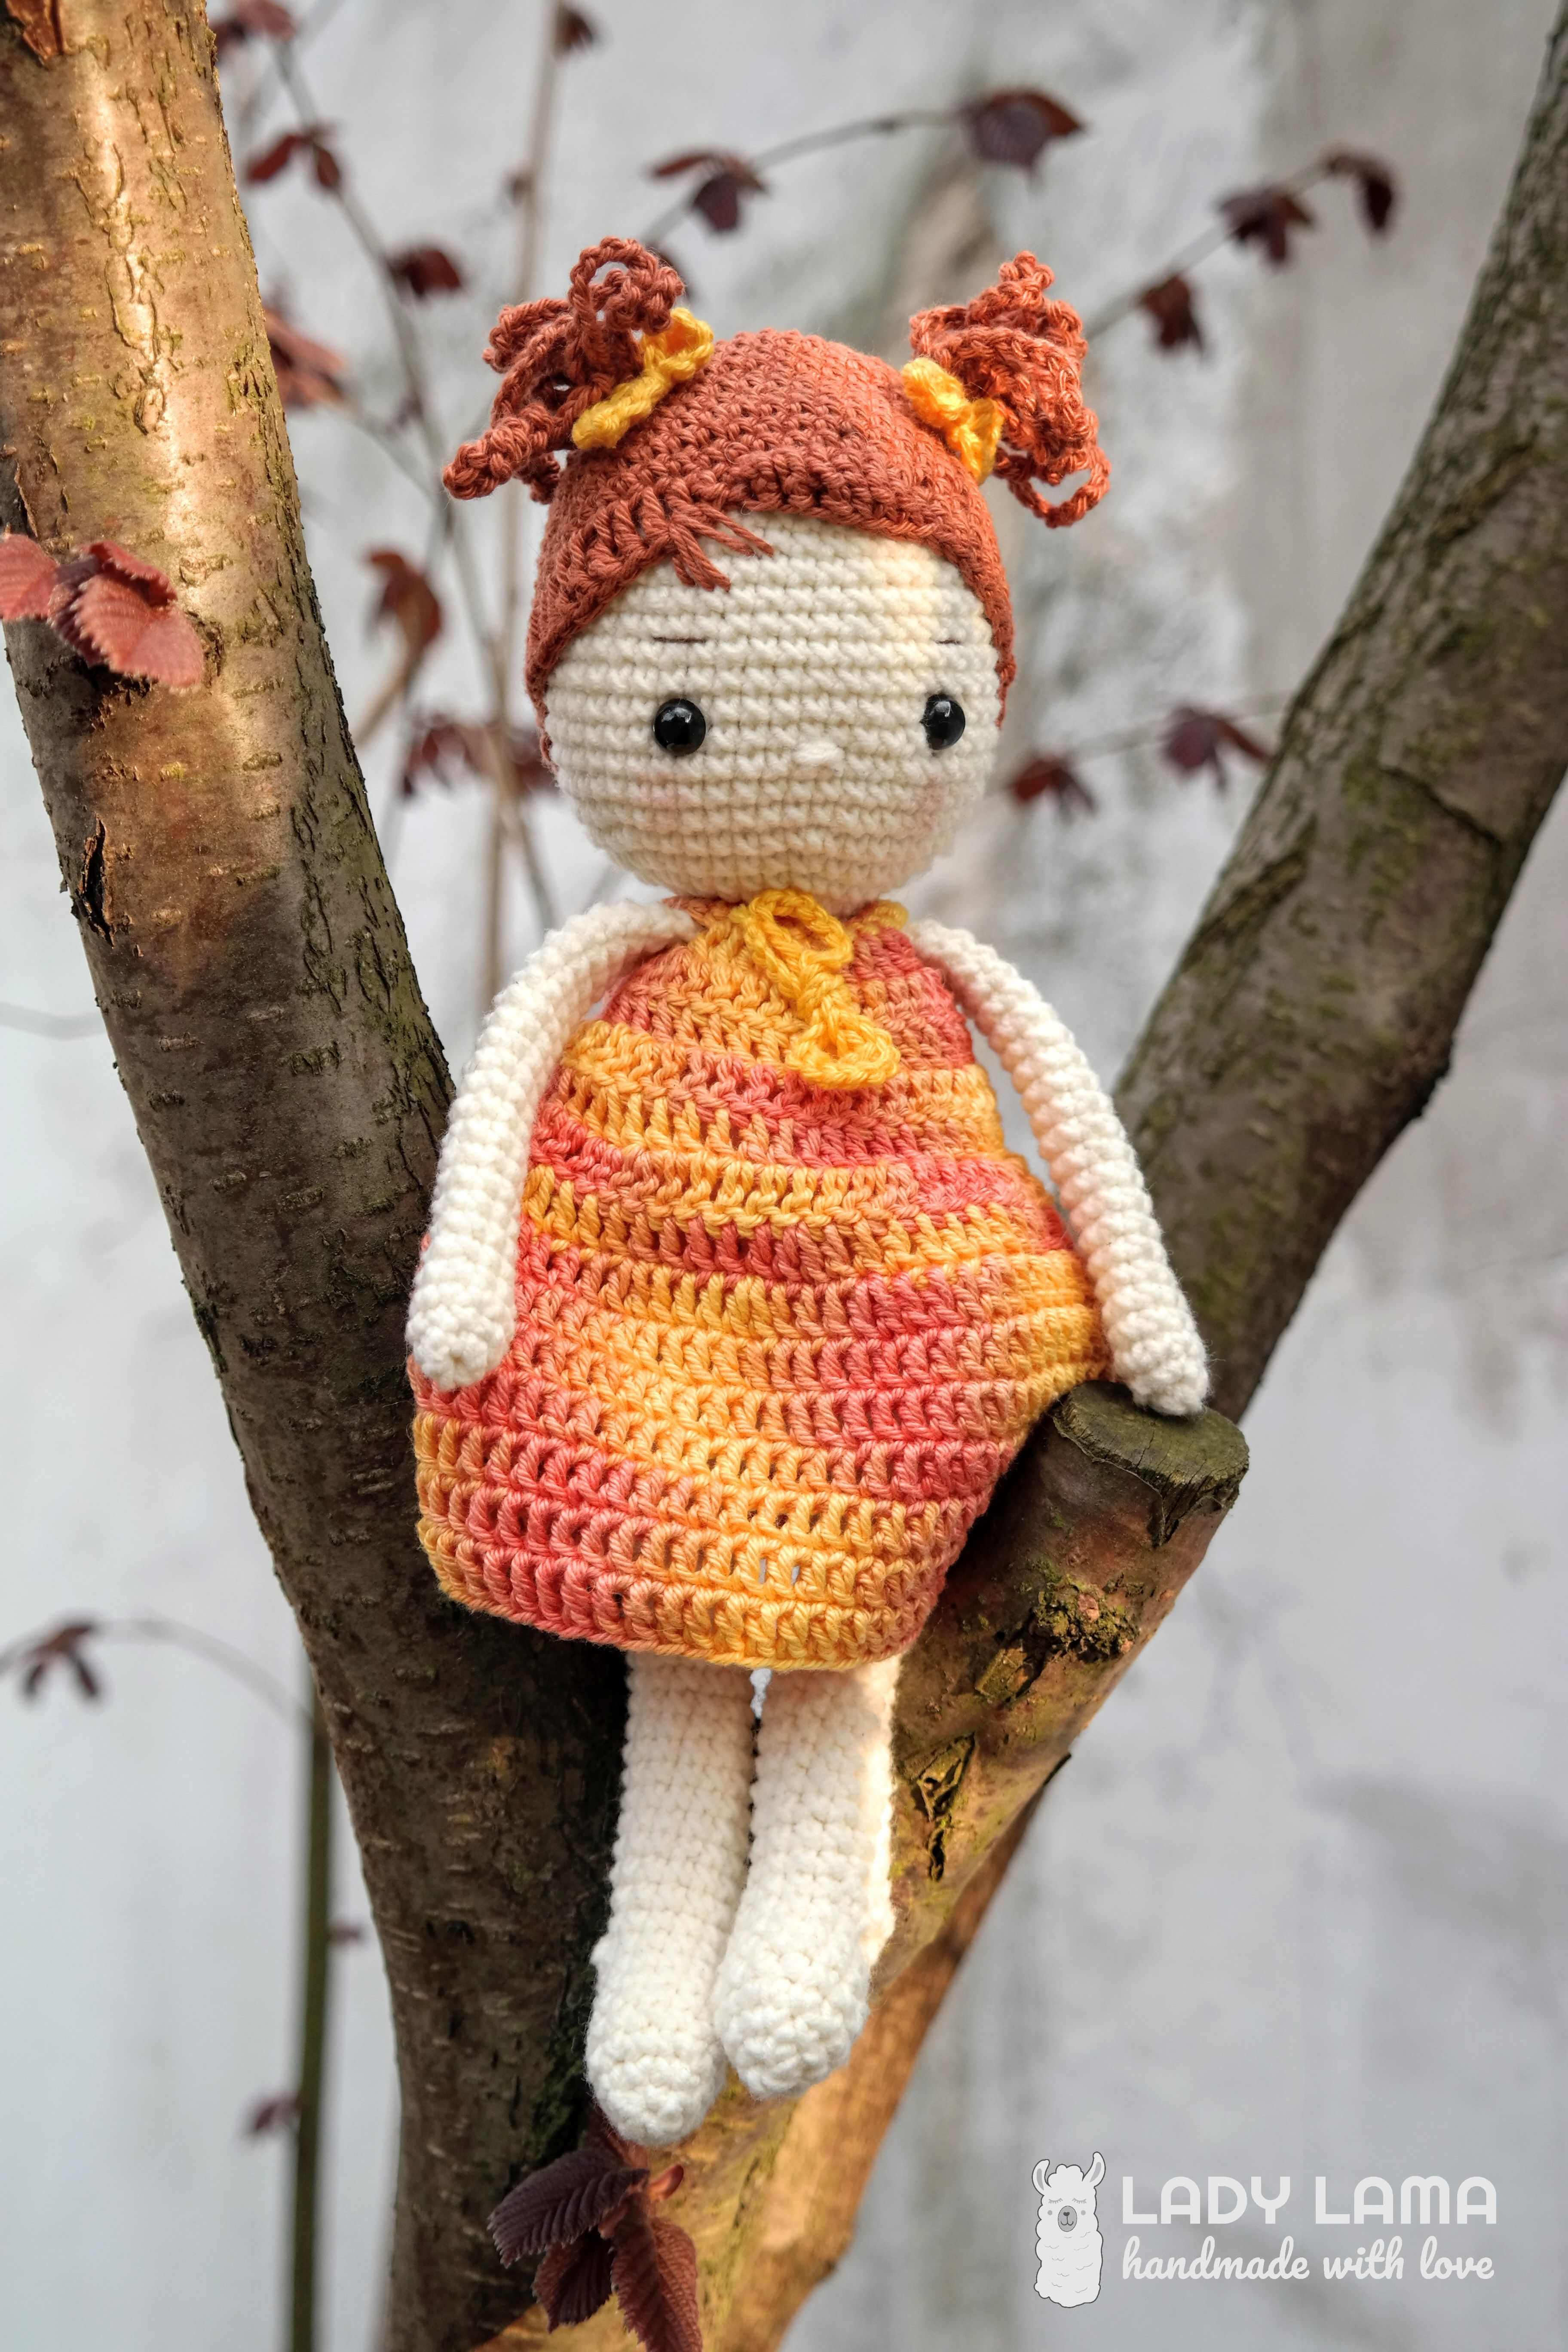 28 Amigurumi Doll Pattern ideas. Crochet doll with lilac dress and ... | 5472x3648